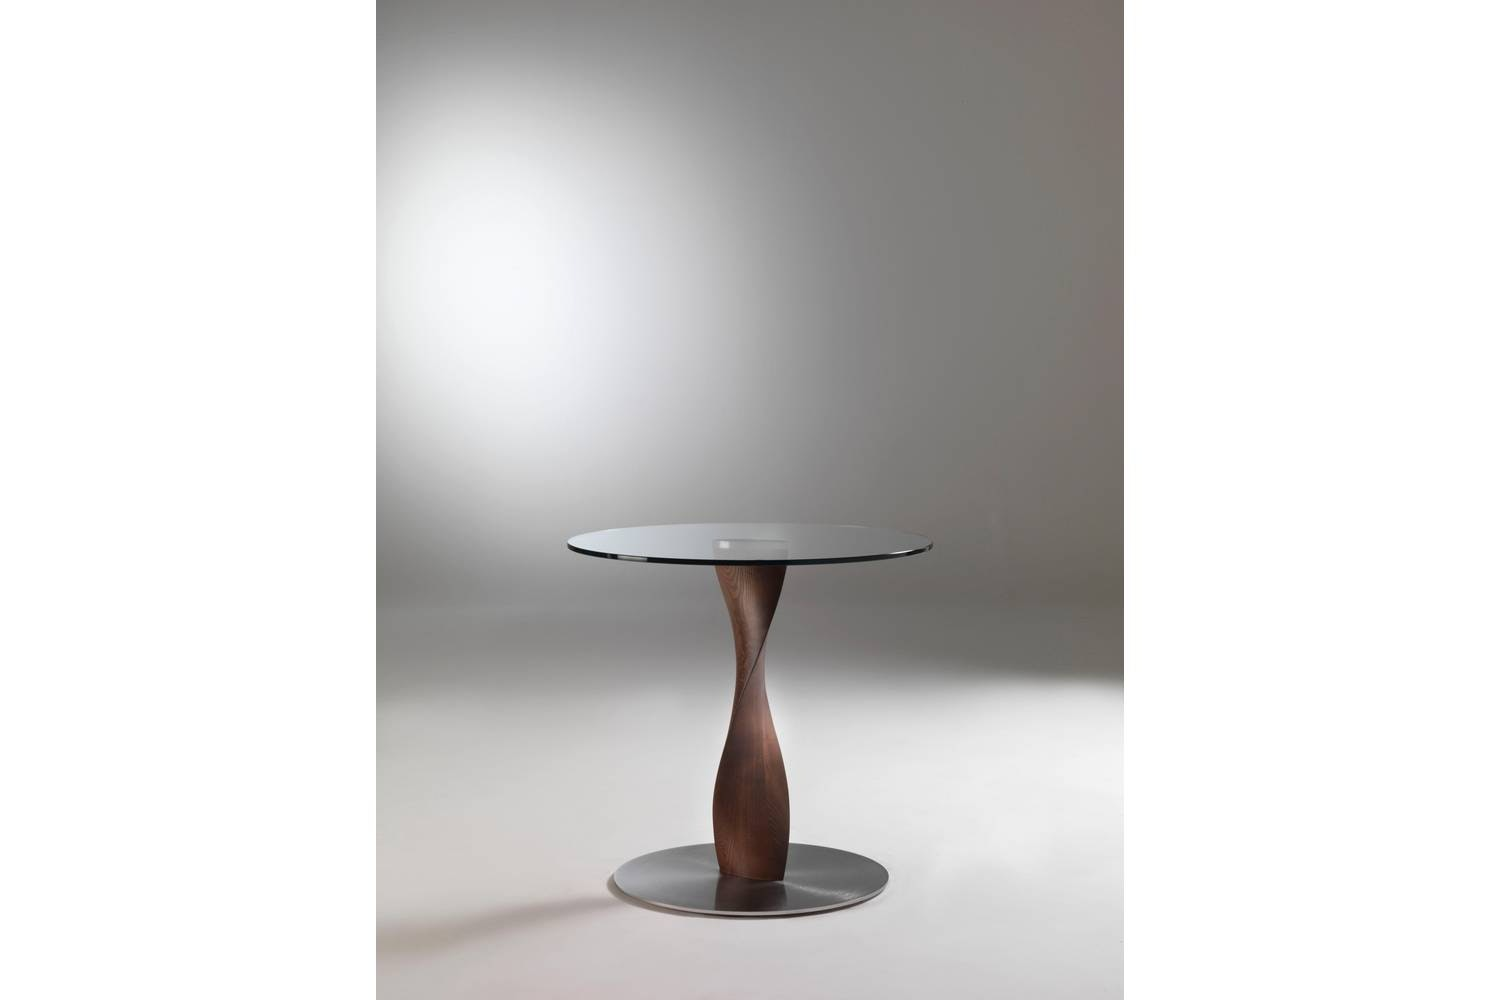 Spin Table by G. Carollo for Porada